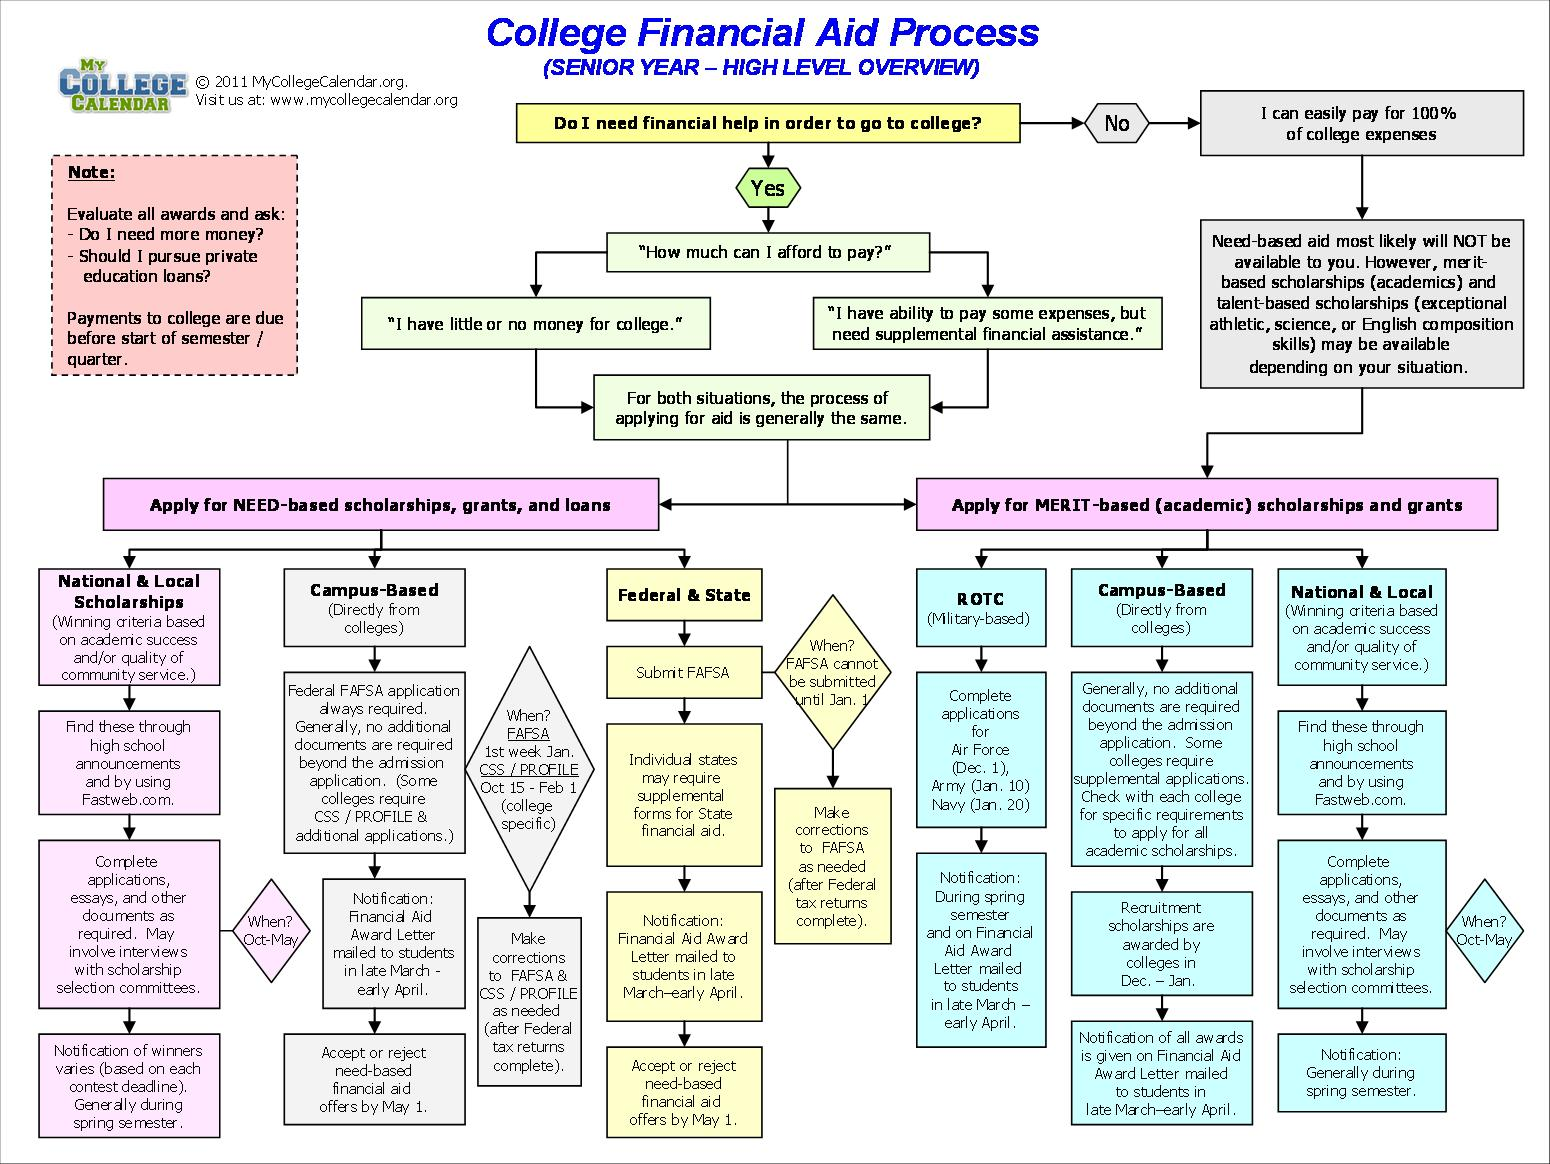 confusing process flow diagram xmtd temperature controller wiring filling out the fafsa ultimate guide